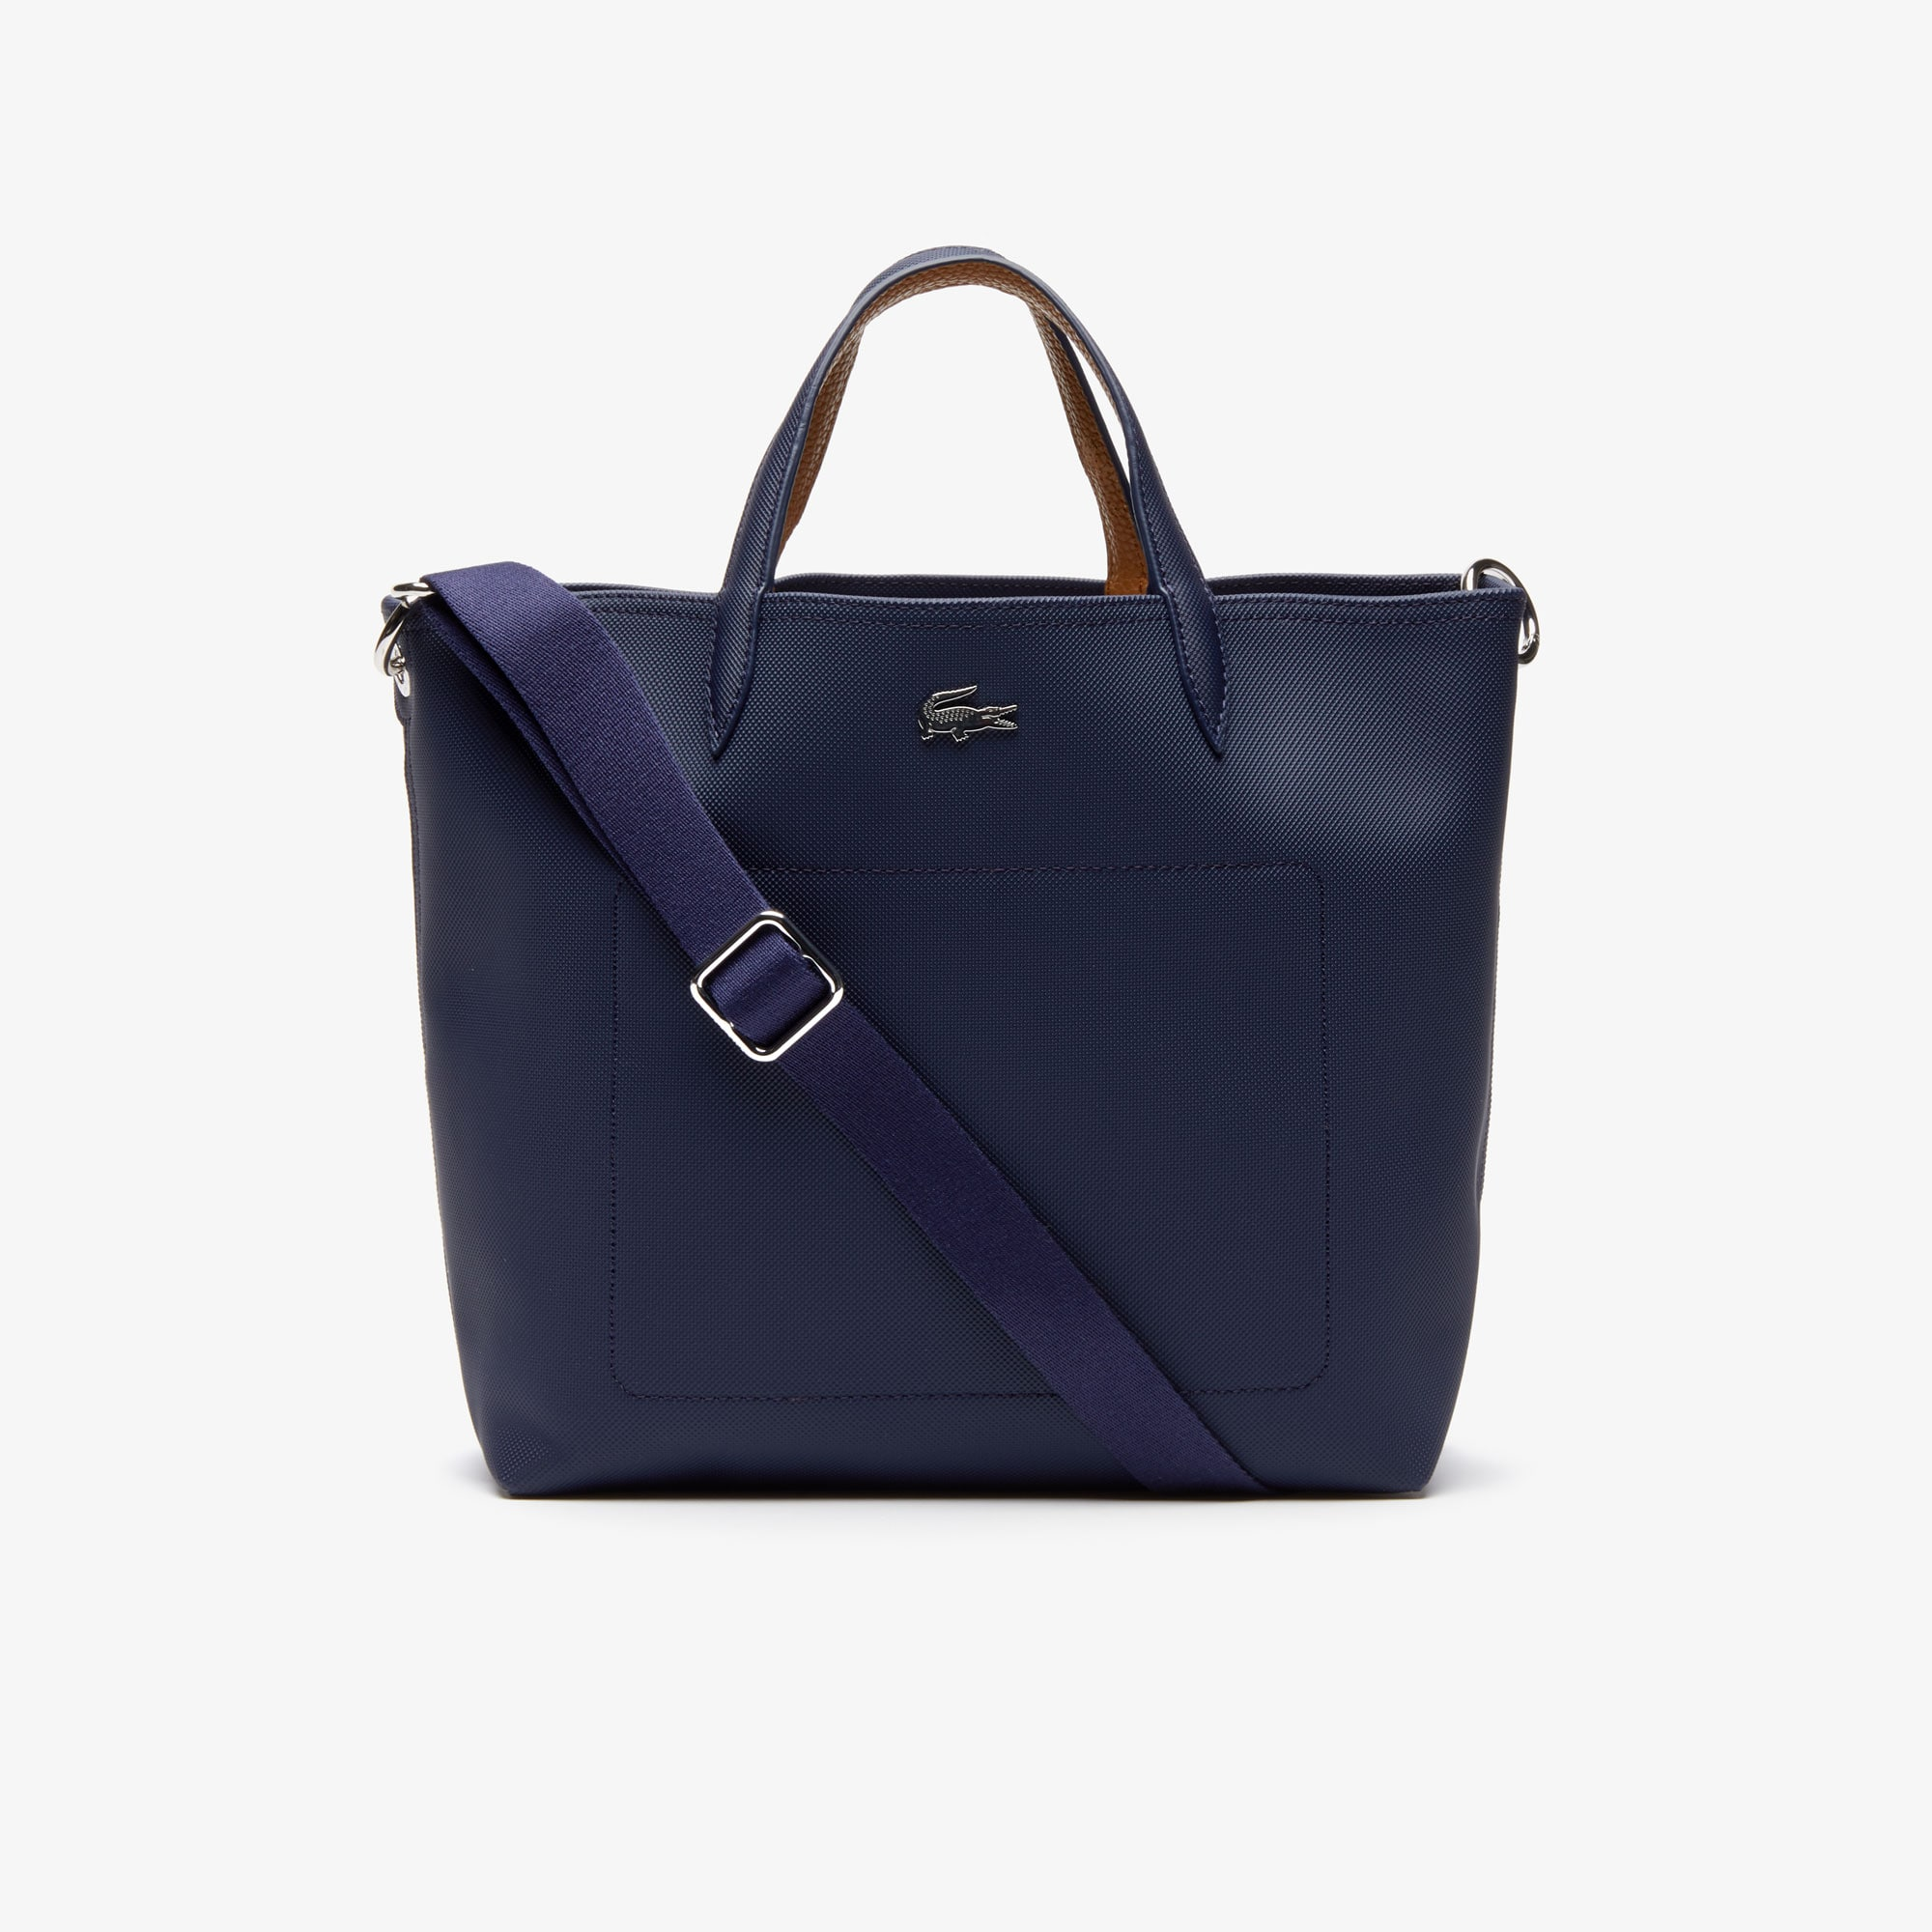 Bags   Handbags Collection   Women s Leather Goods   LACOSTE f8cd0f22fd6